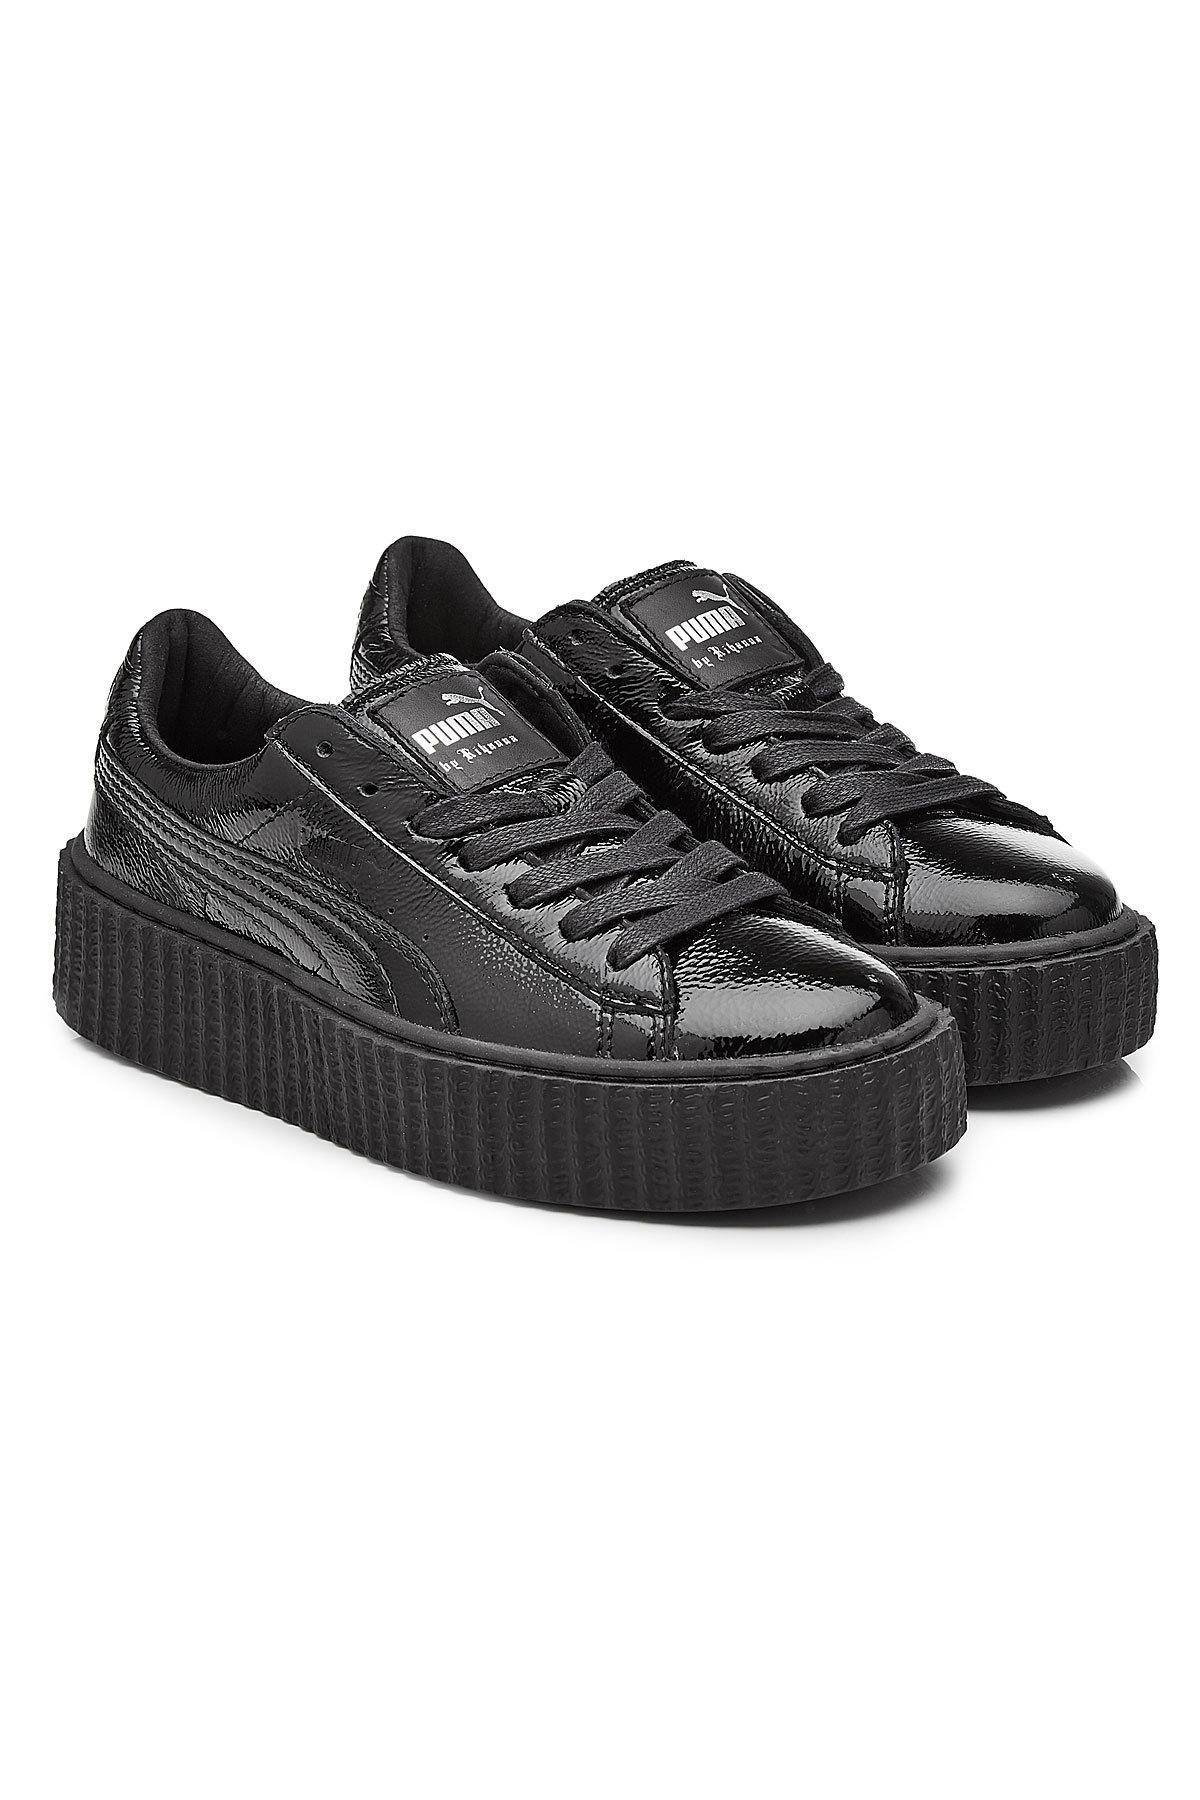 8fb22a4313d447 Lyst - PUMA Patent Leather Creeper Sneakers in Black